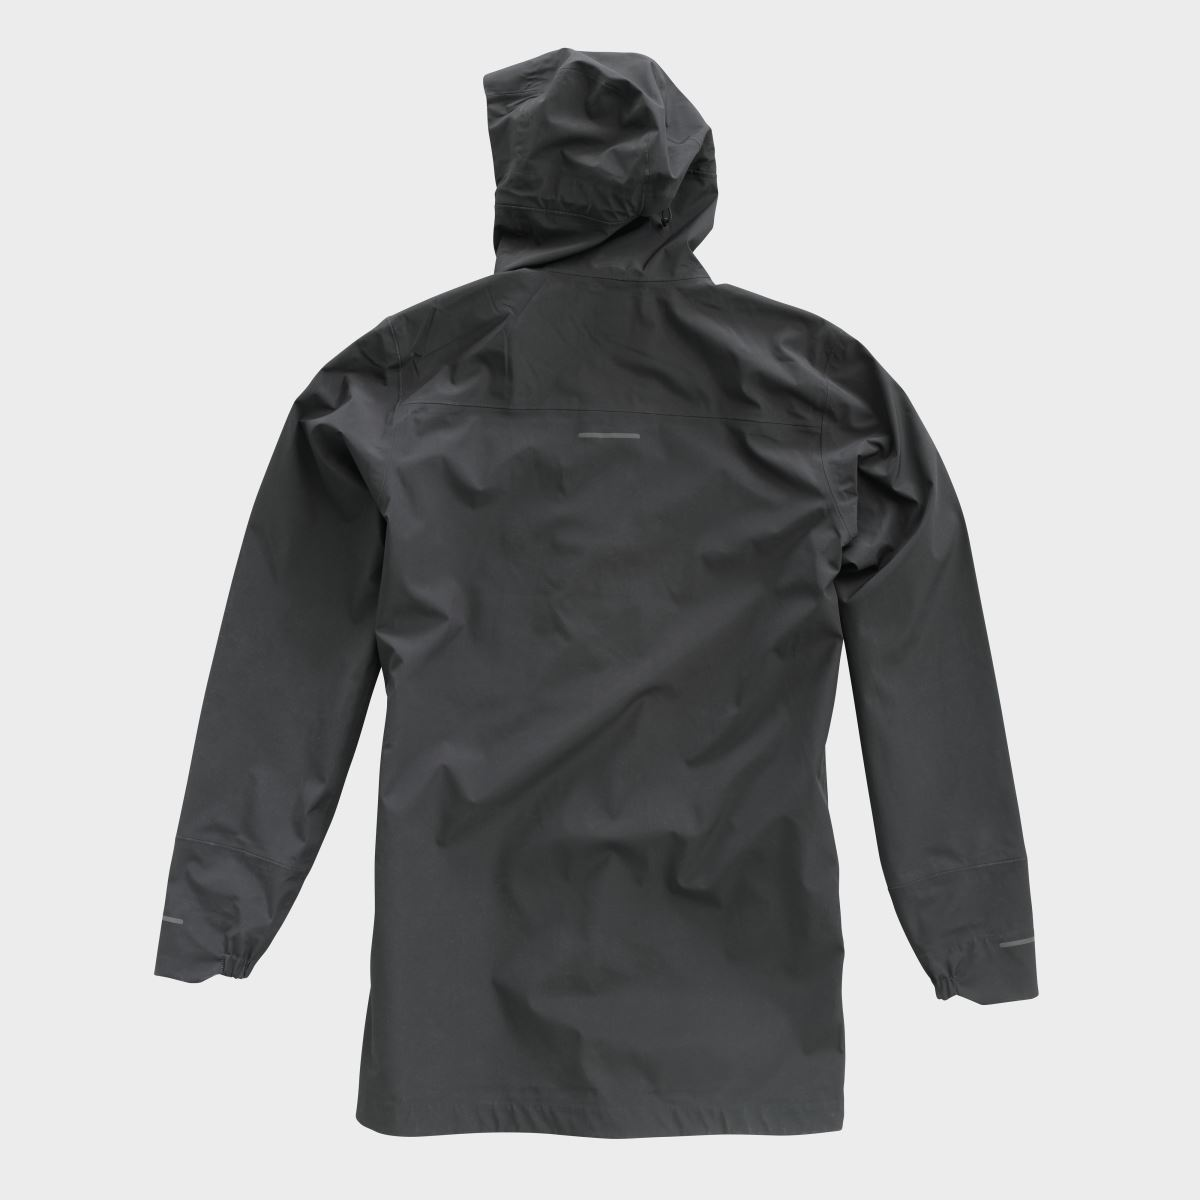 REMOTE PARKA - back - CASUAL CLOTHING COLLECTION 2020